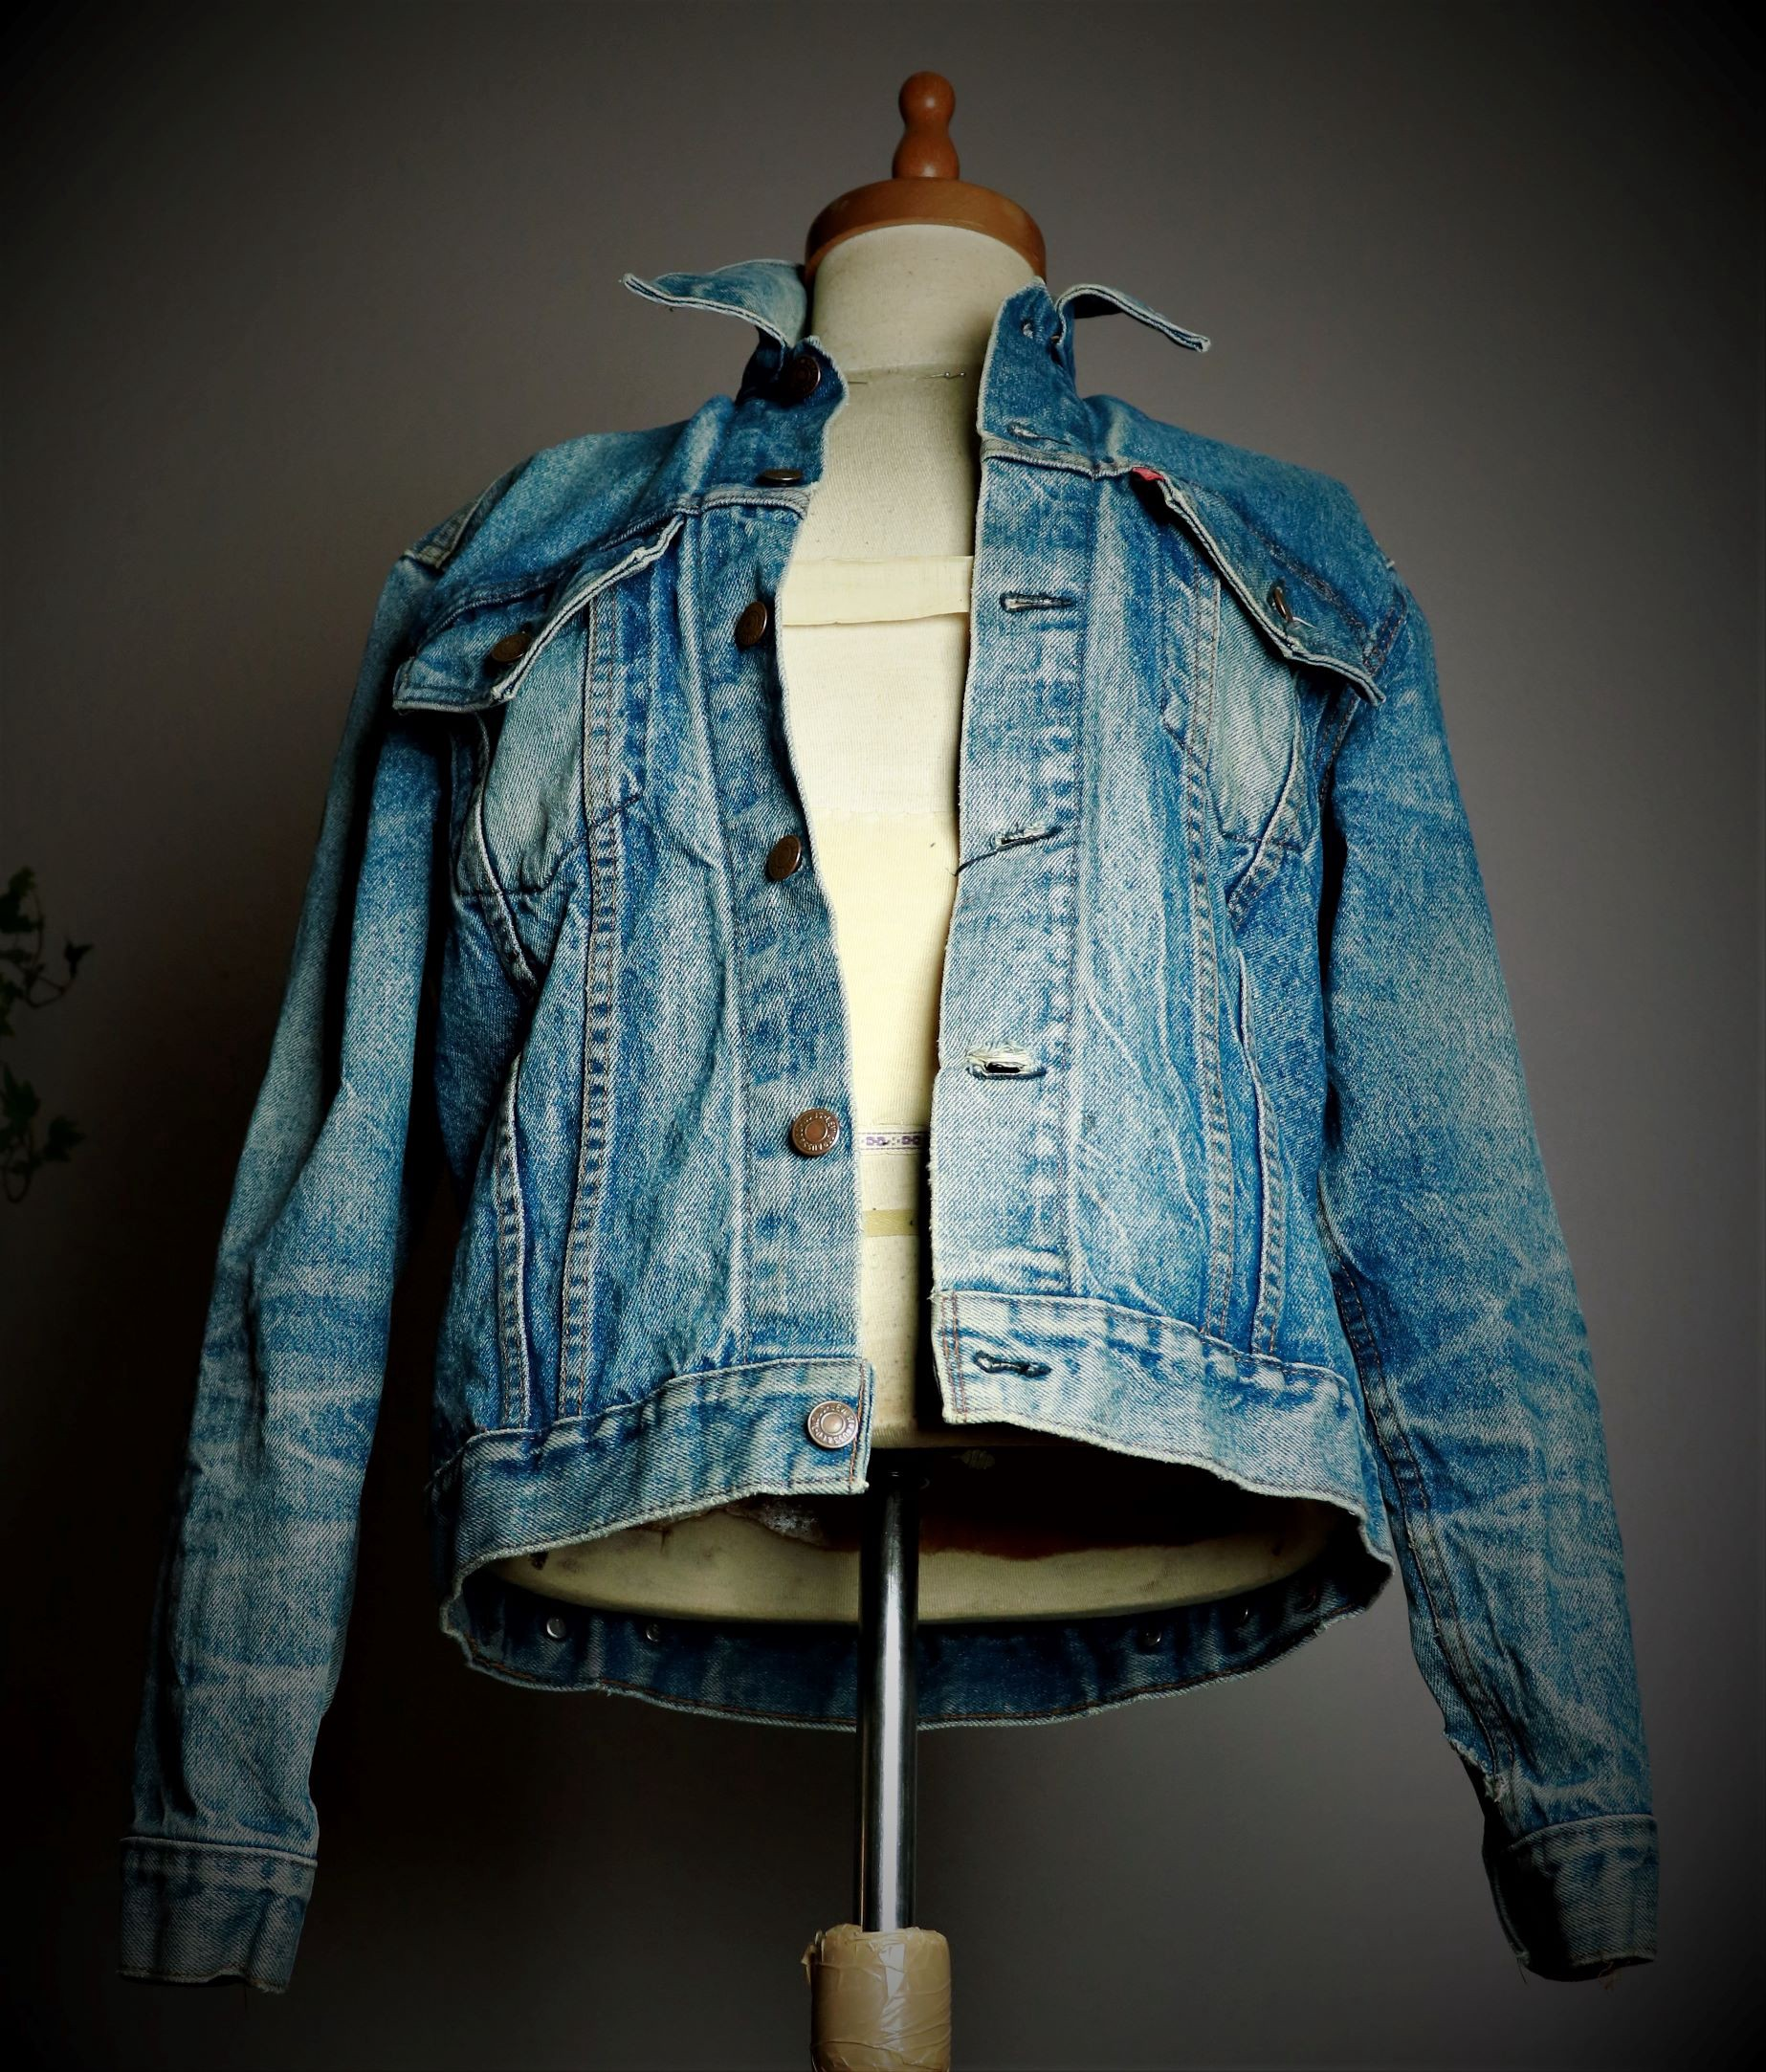 Levi's Jacket from 1977 front view photograph